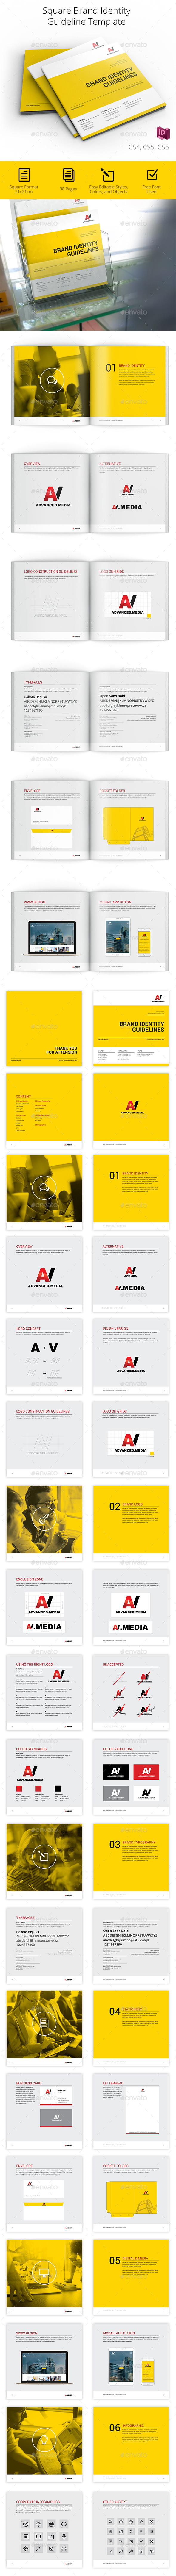 Square Brand Identity Guidelines - Informational Brochures